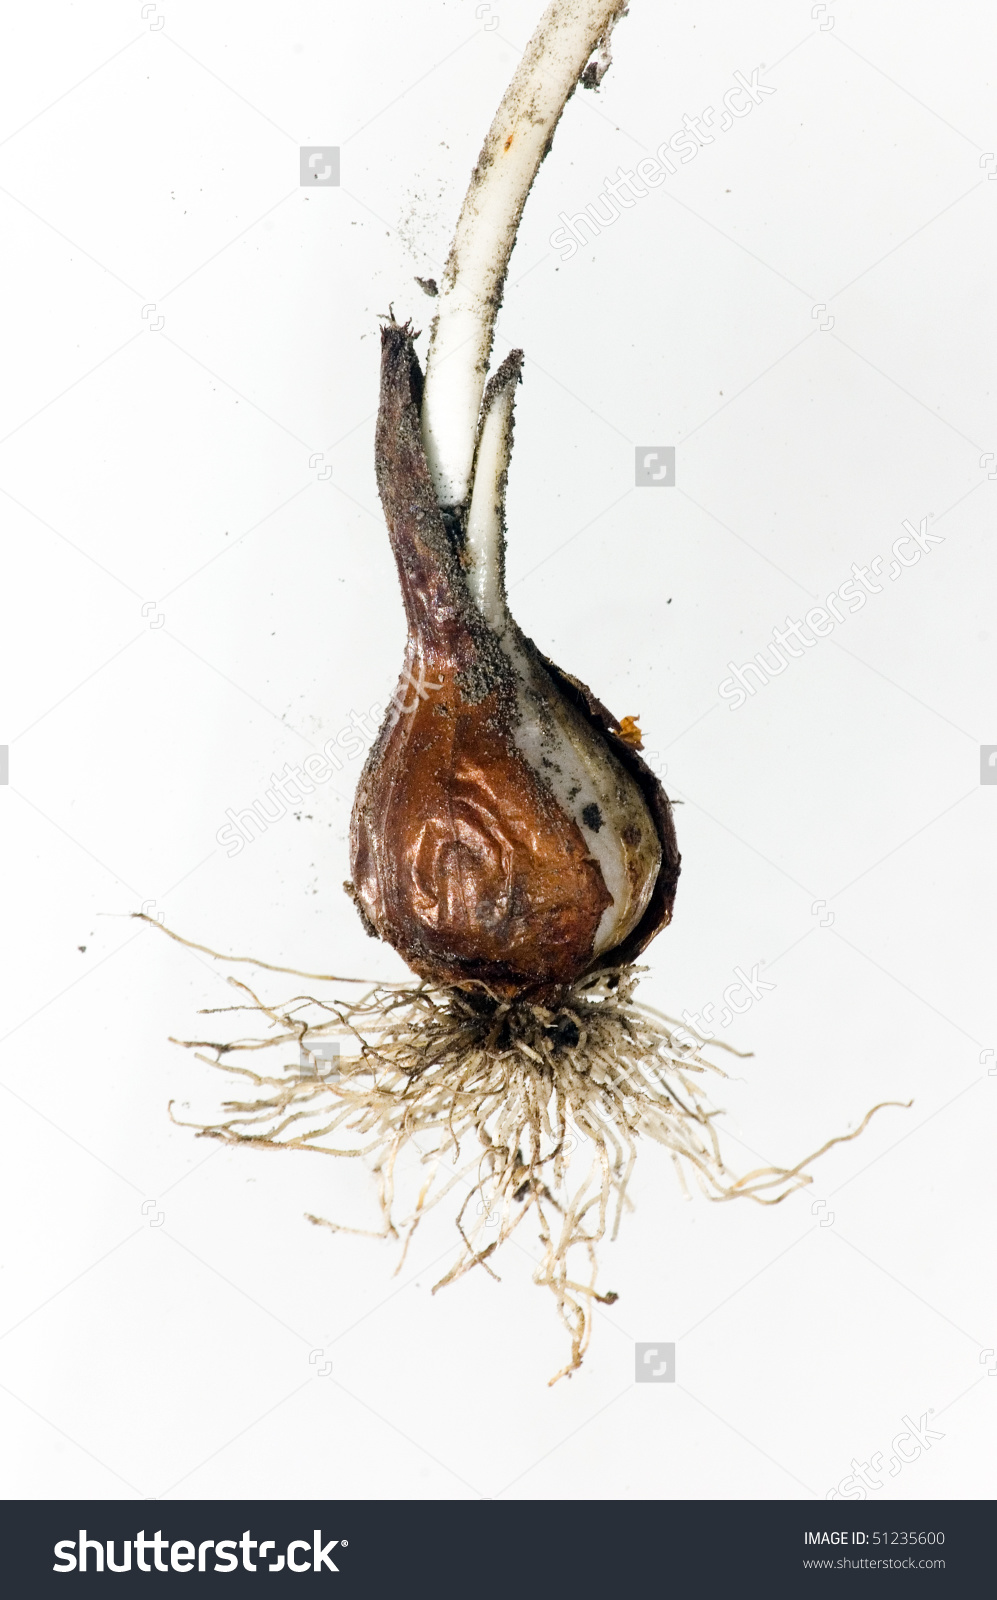 Tulip Bulb Root Isolated Object Stock Photo 51235600.